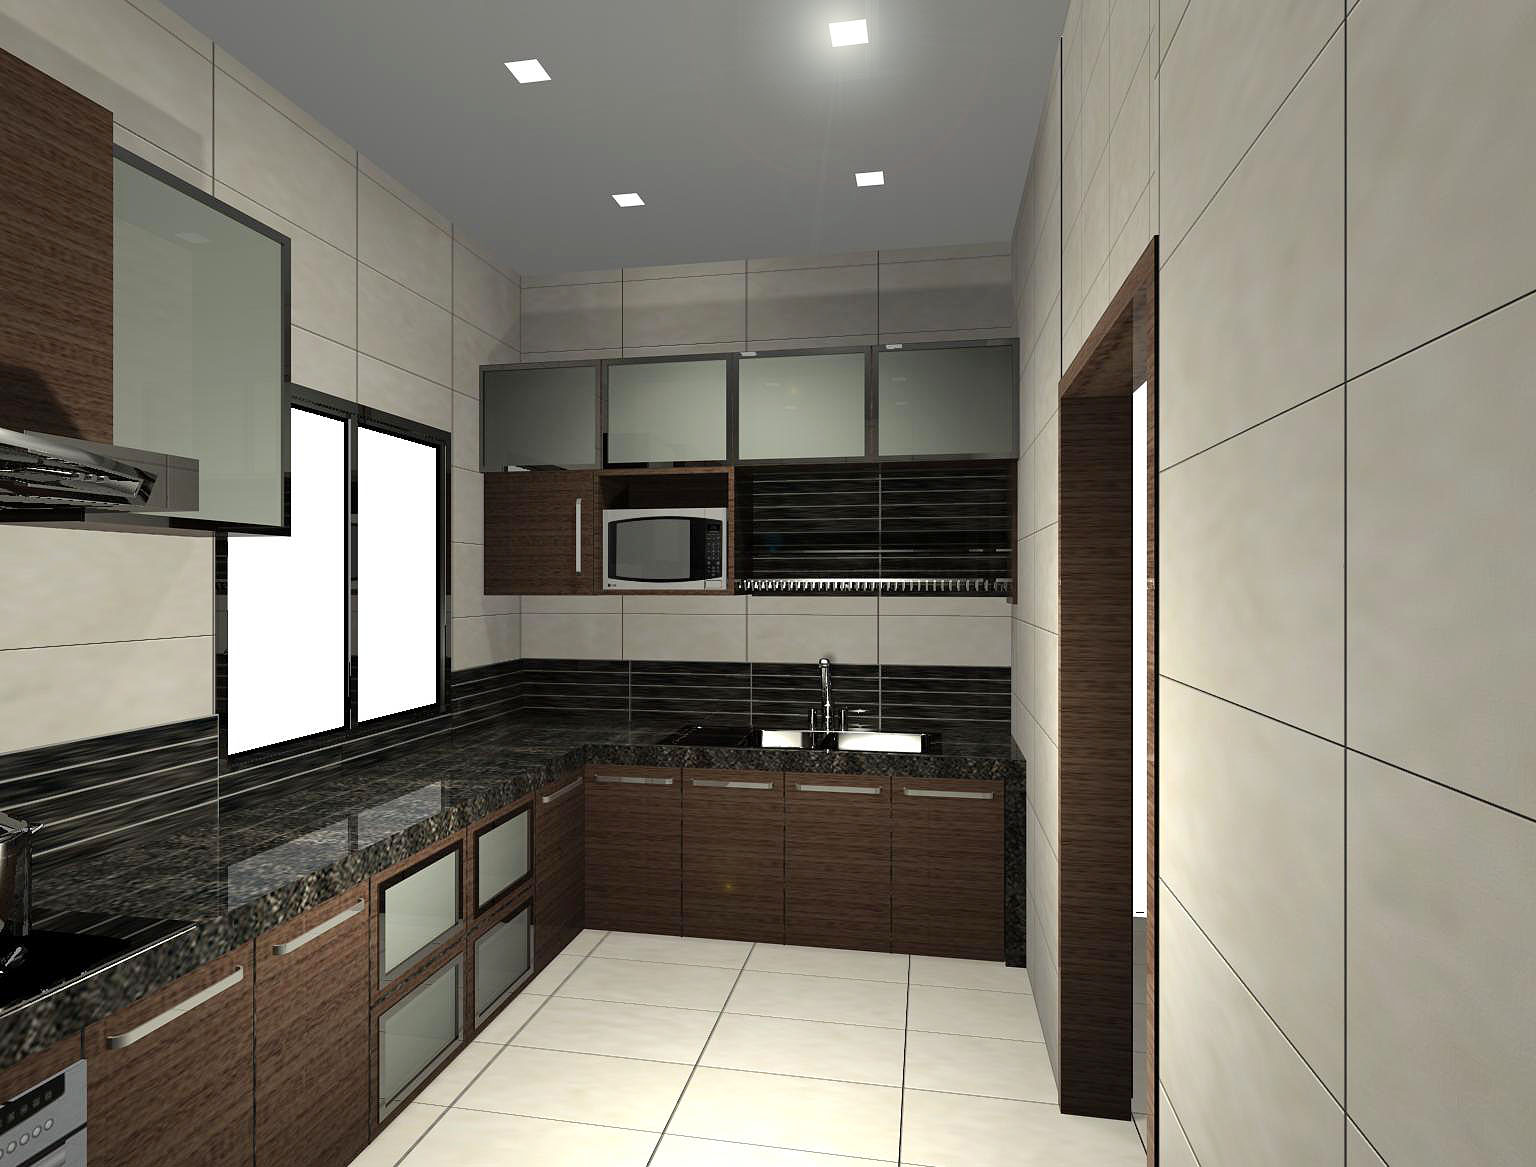 Kitchen Interior Design: Mica Interior Design And Construction: Kitchen Cabinet